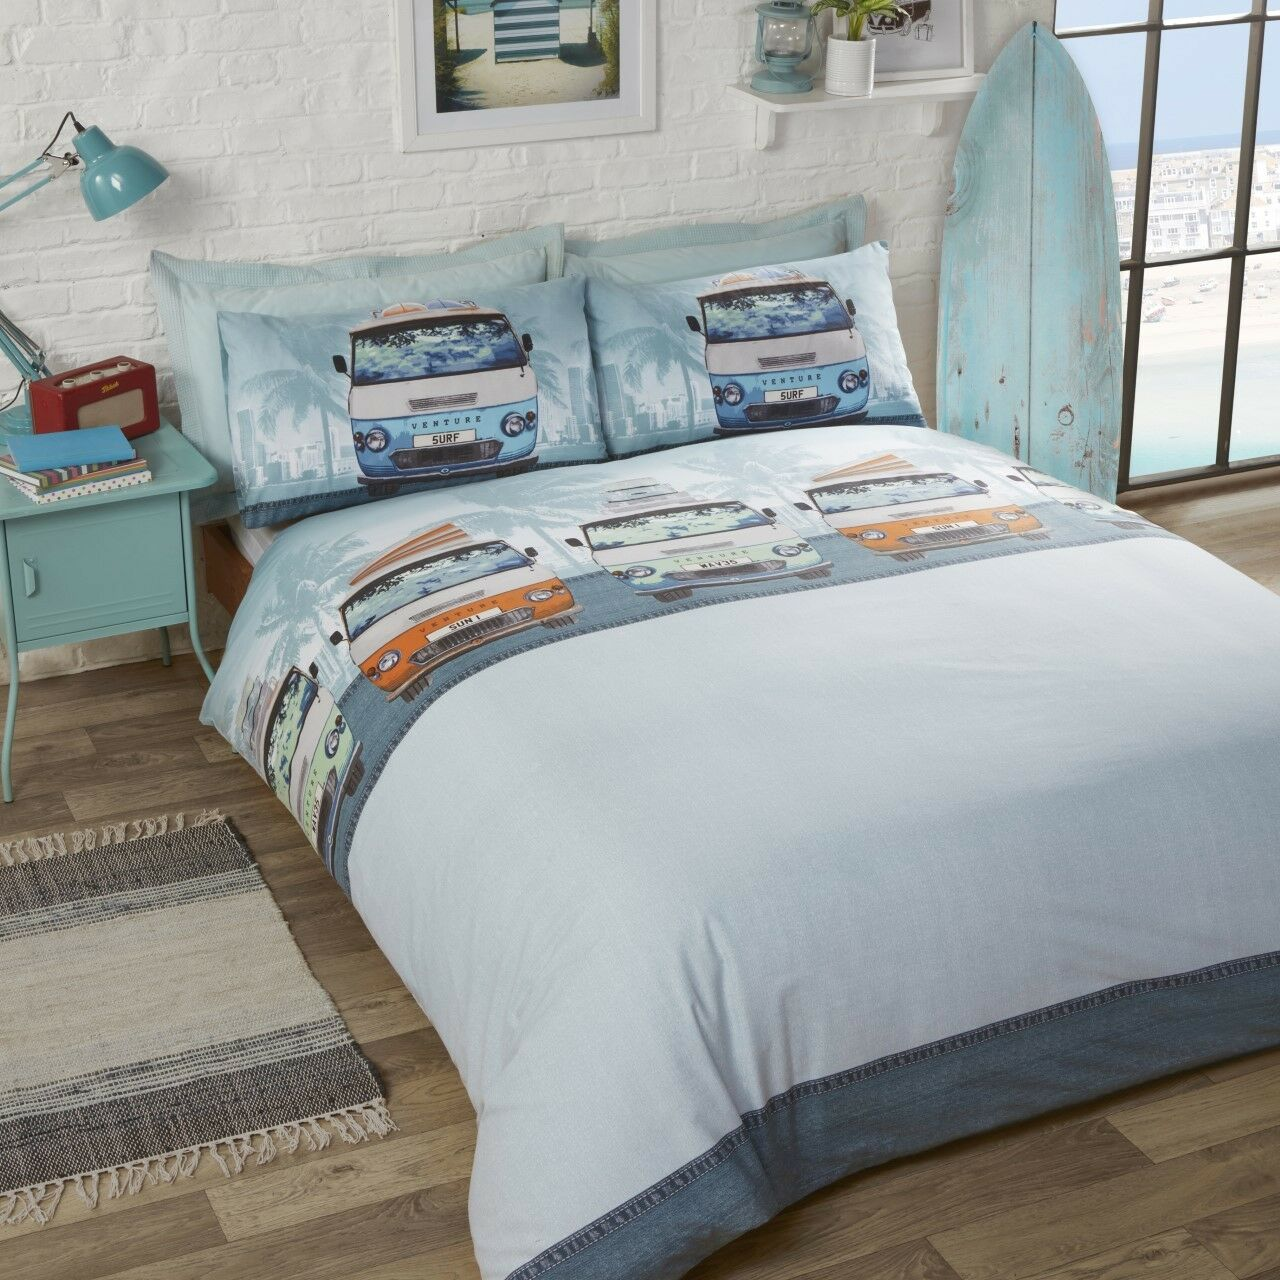 #Bedding Novelty Quirky Bed Sets Duvet Cover Set Polycotton